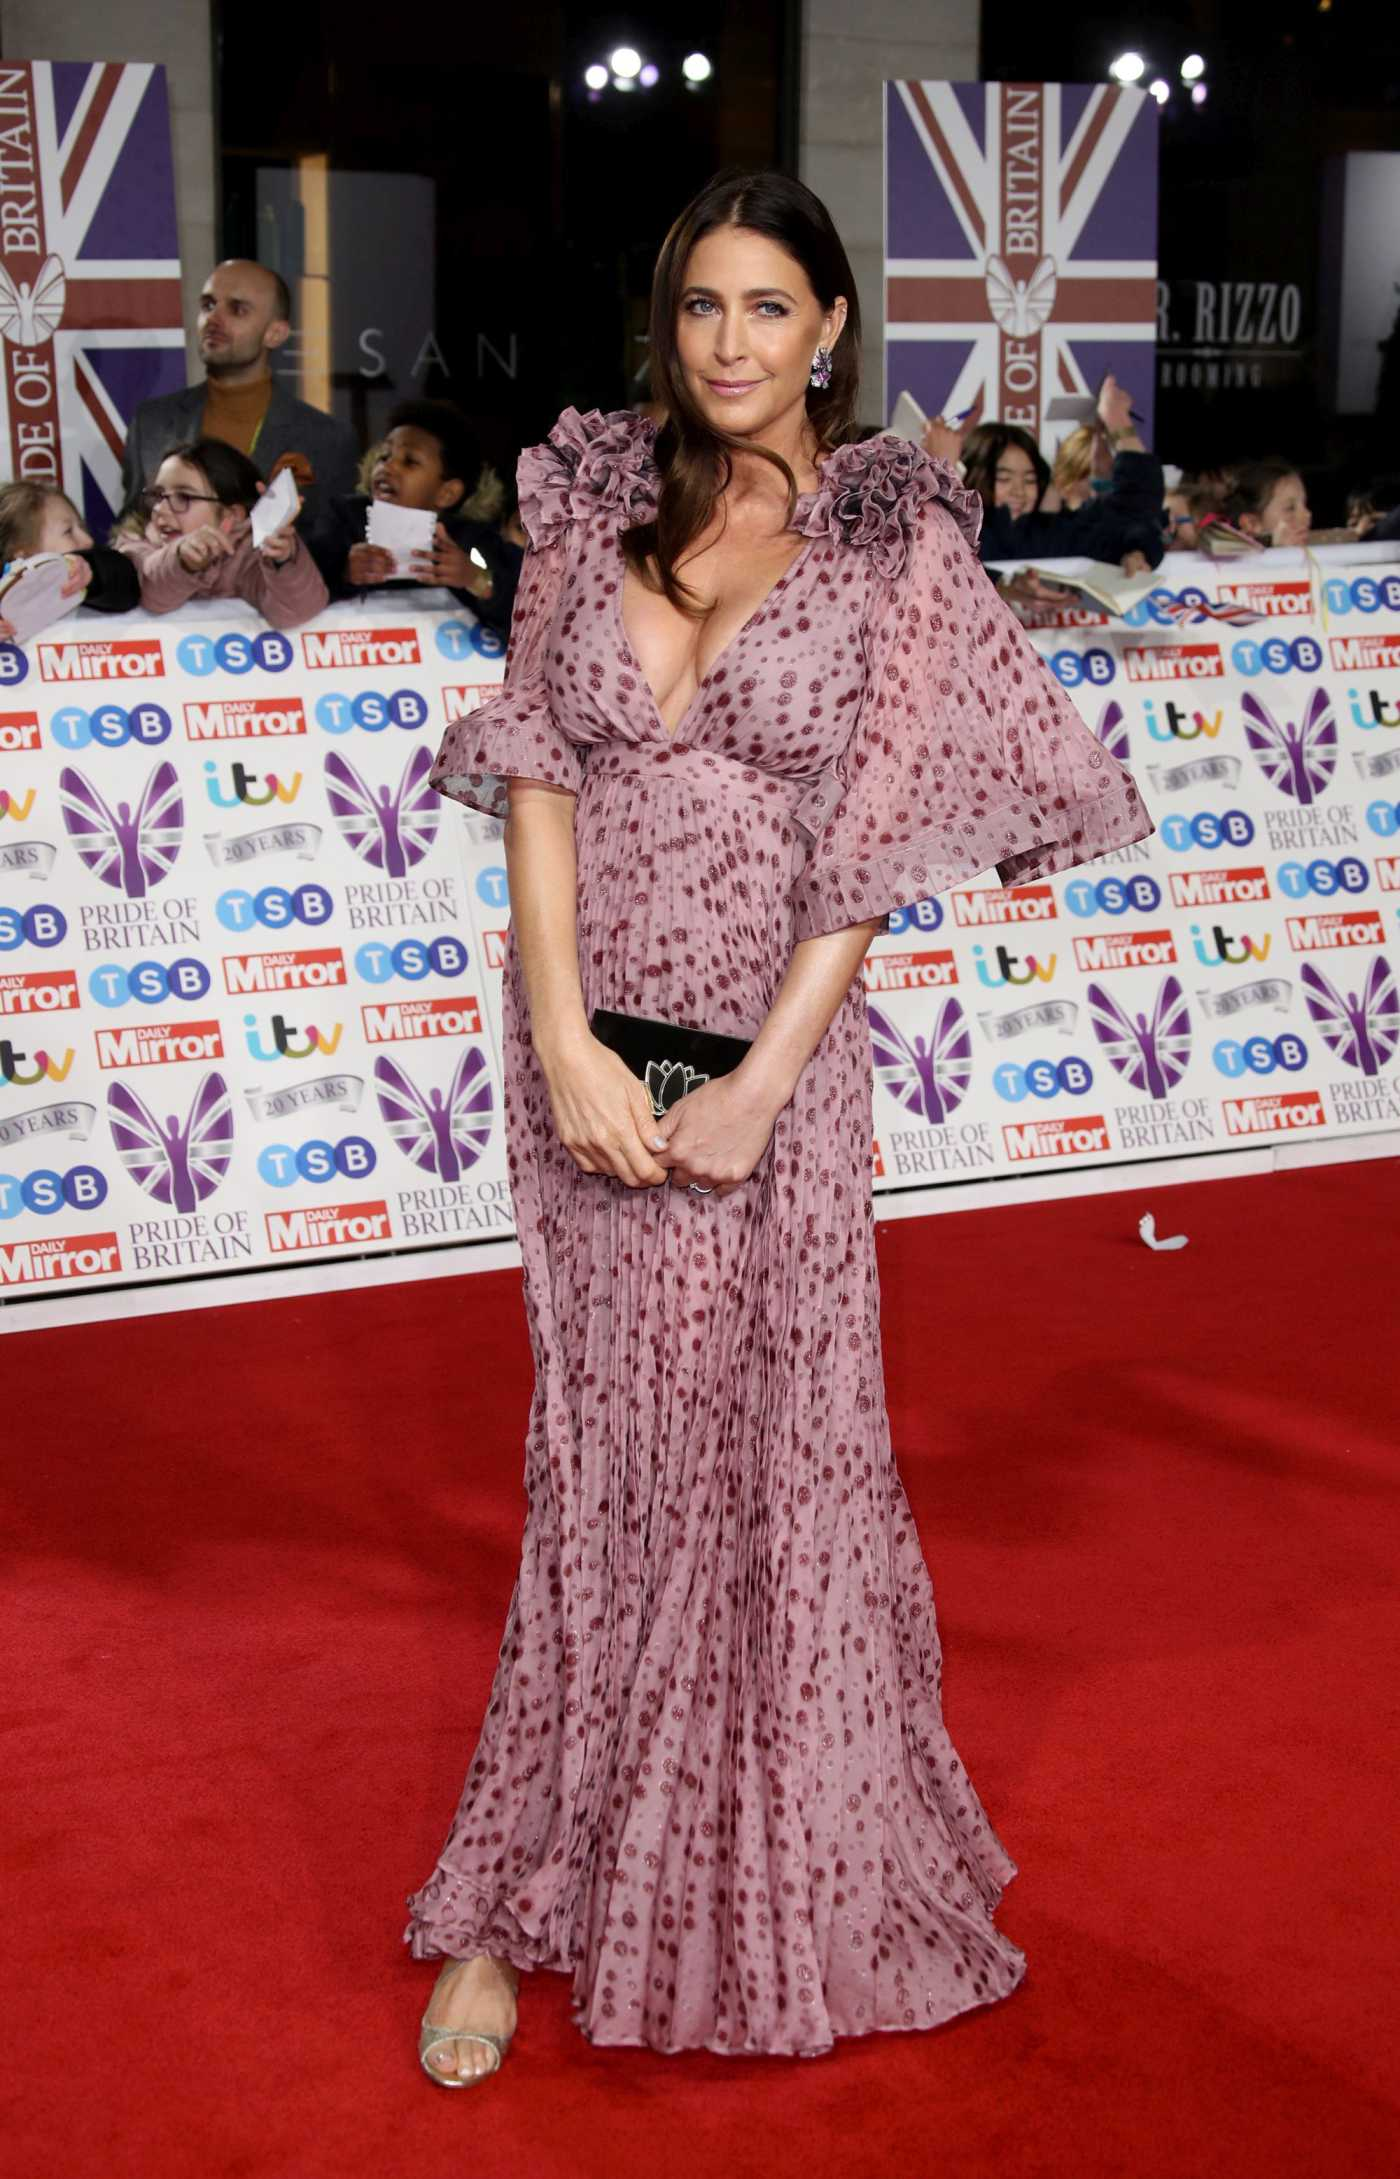 Lisa Snowdon Attends 2019 Pride of Britain Awards in London 10/28/2019